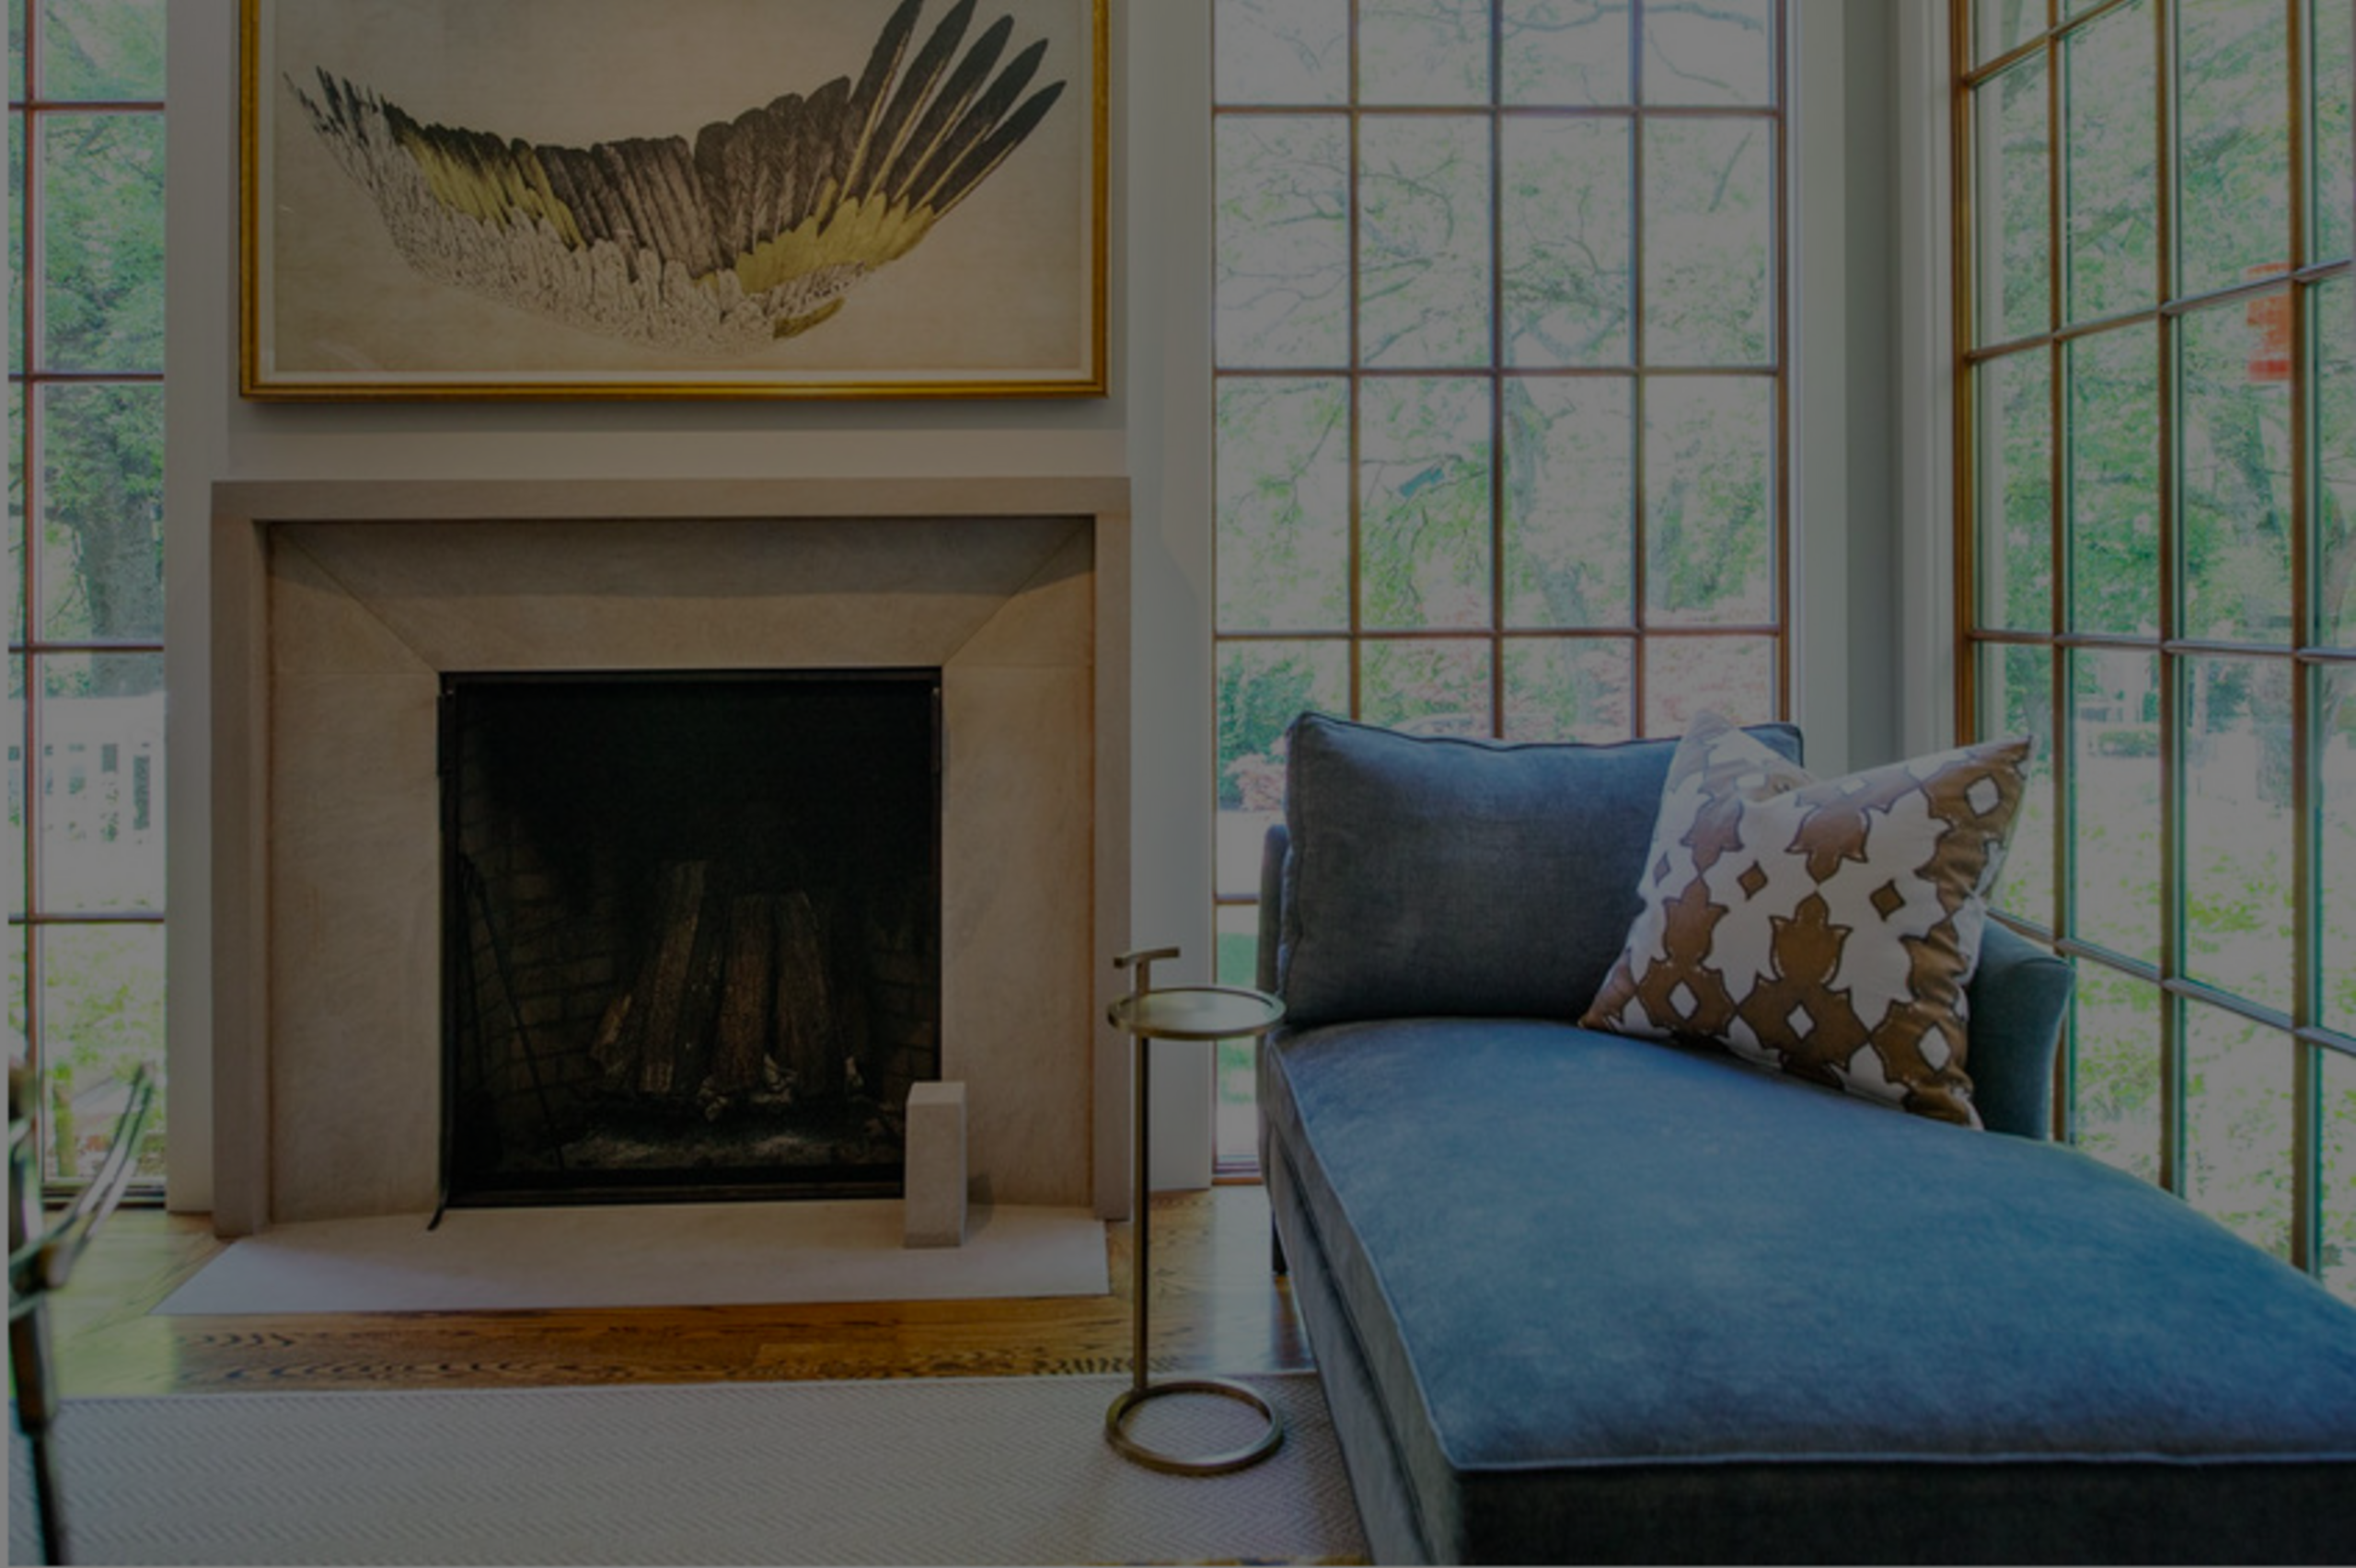 Your Trusted Guide to Exquisite Home Sales